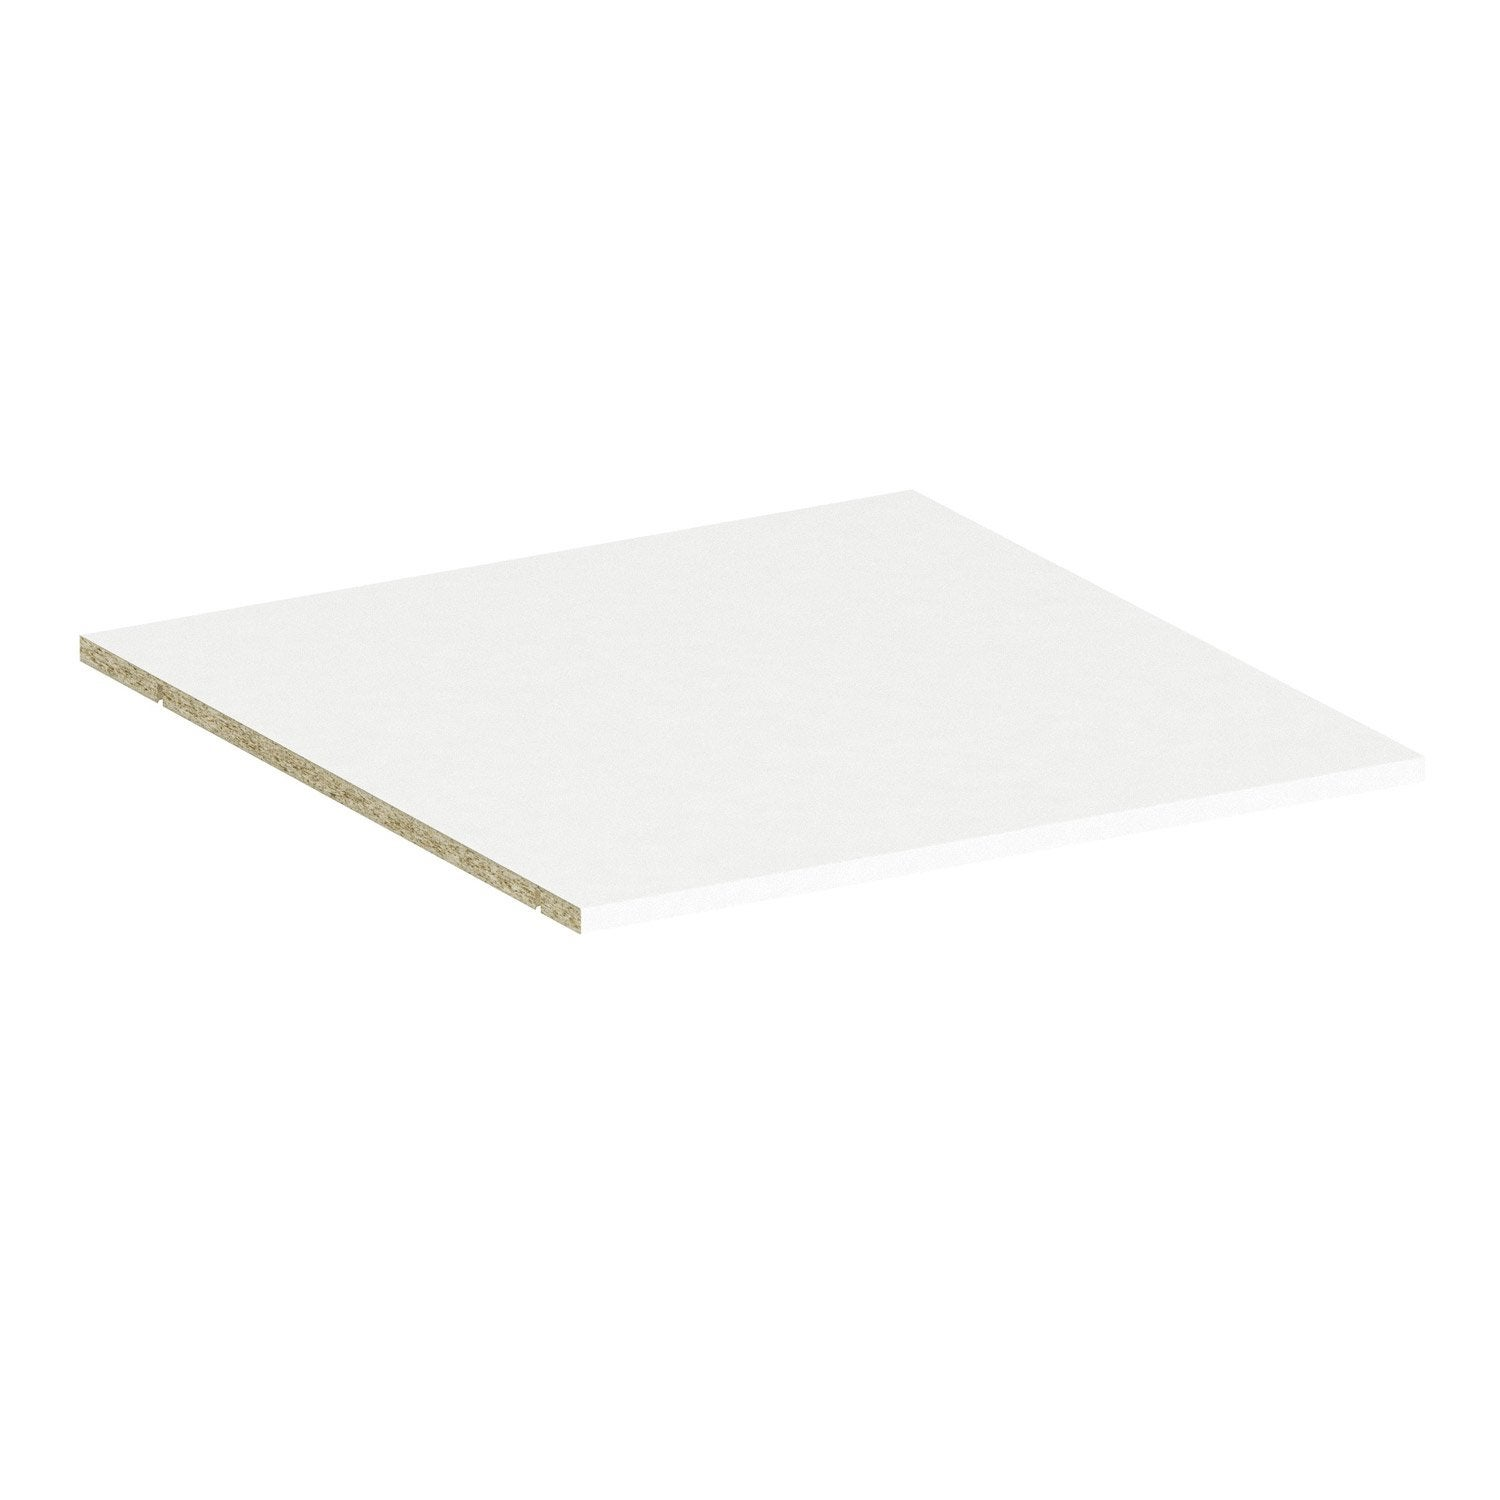 Tablette spaceo home 1 6 x 60 x 60 cm blanc leroy merlin for Tablette spaceo leroy merlin